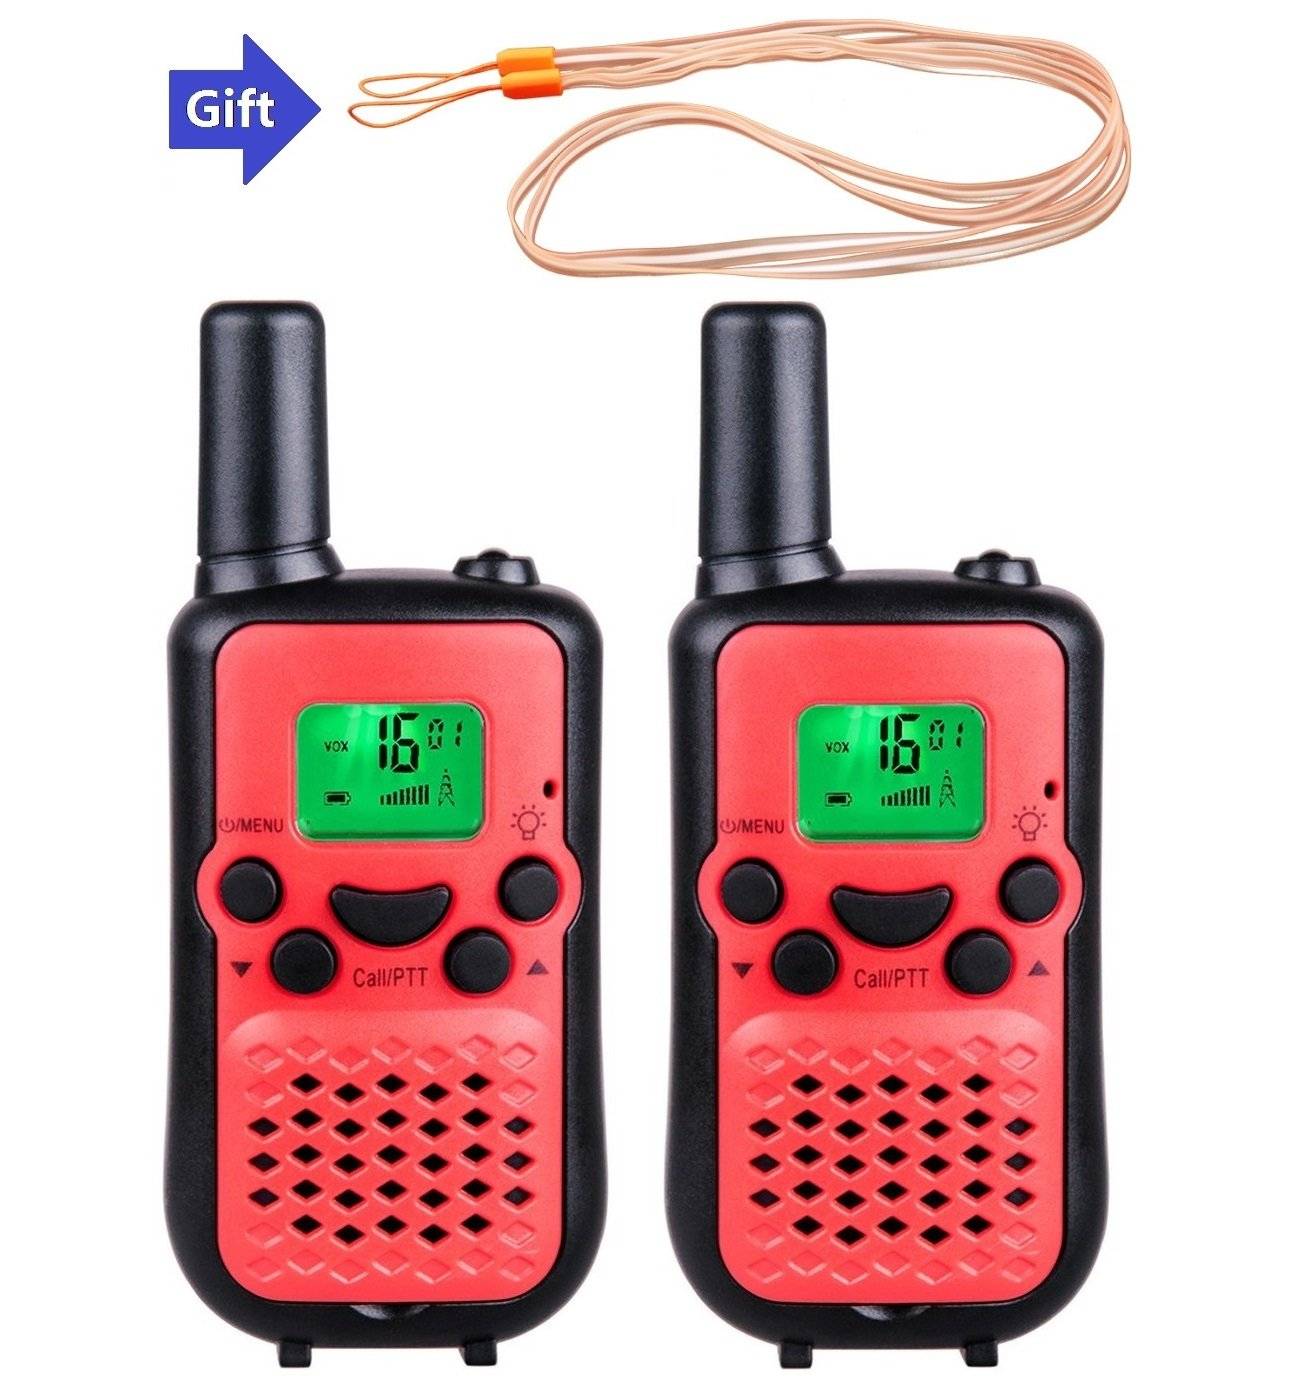 MeMo Toys Walkie Talkies Two Way Radios for Kids Wireless Interphone 22 Channel 2 Way Radio up to 3 Miles Handheld (Red1)